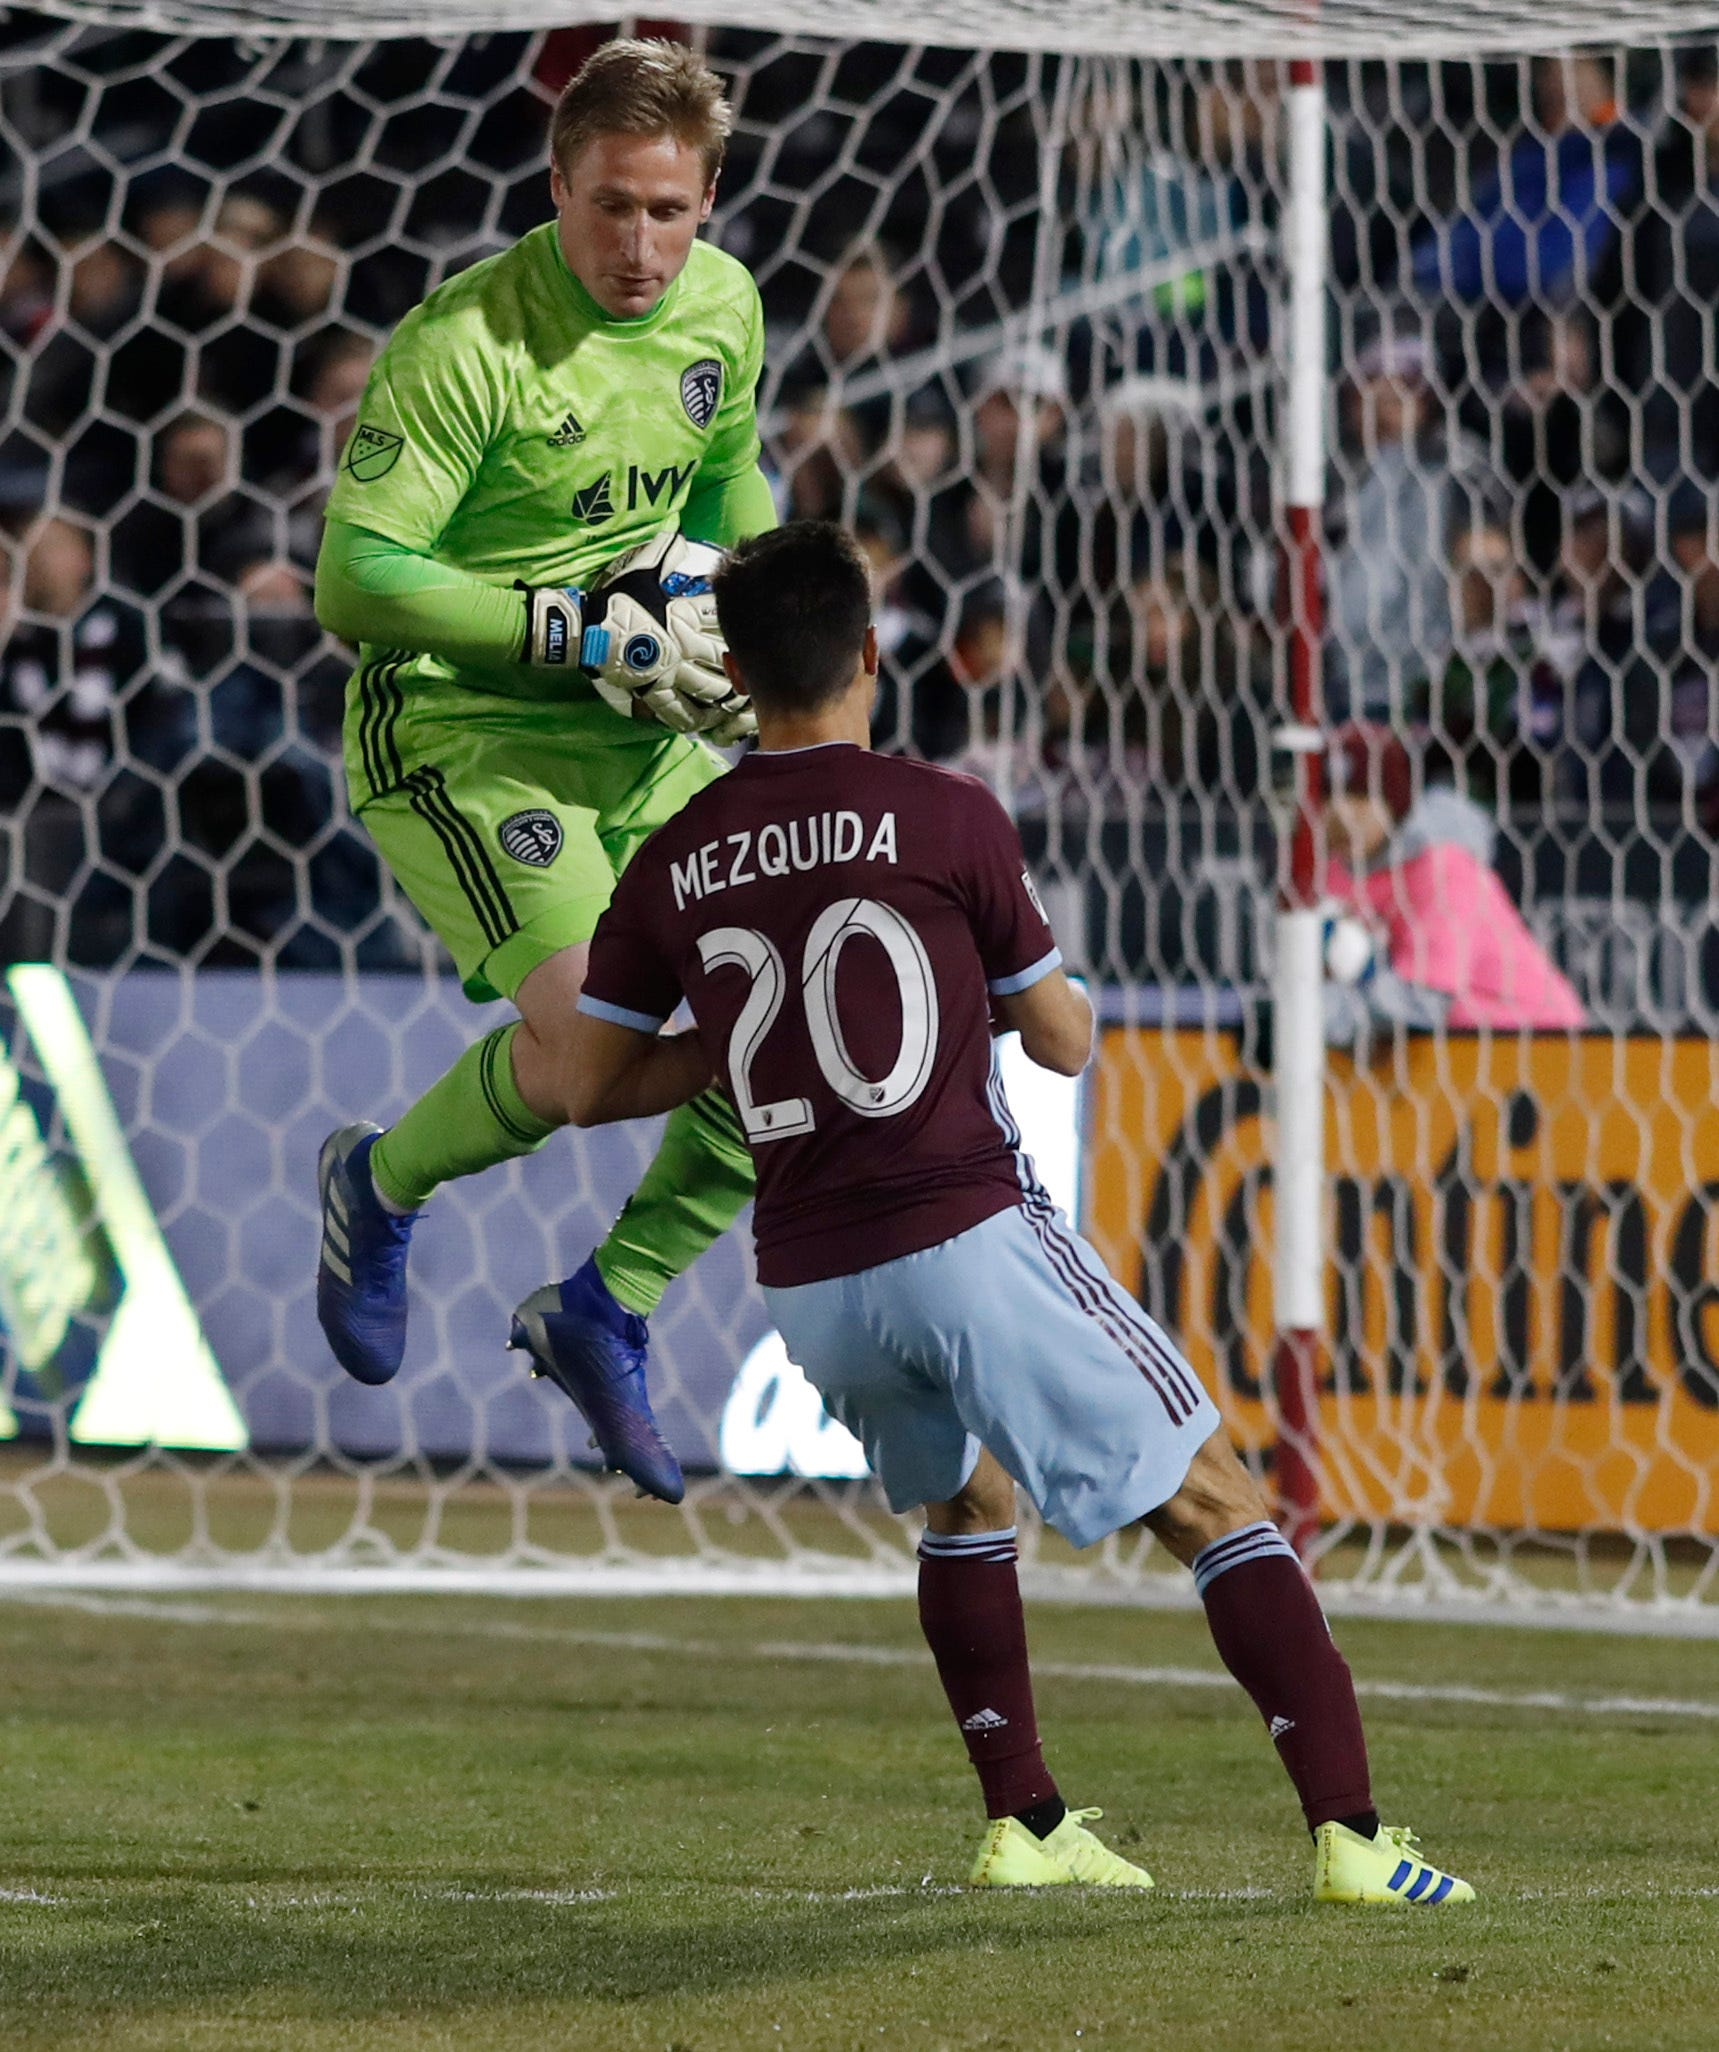 Russell's late goal lifts Sporting KC to 1-1 tie with Rapids